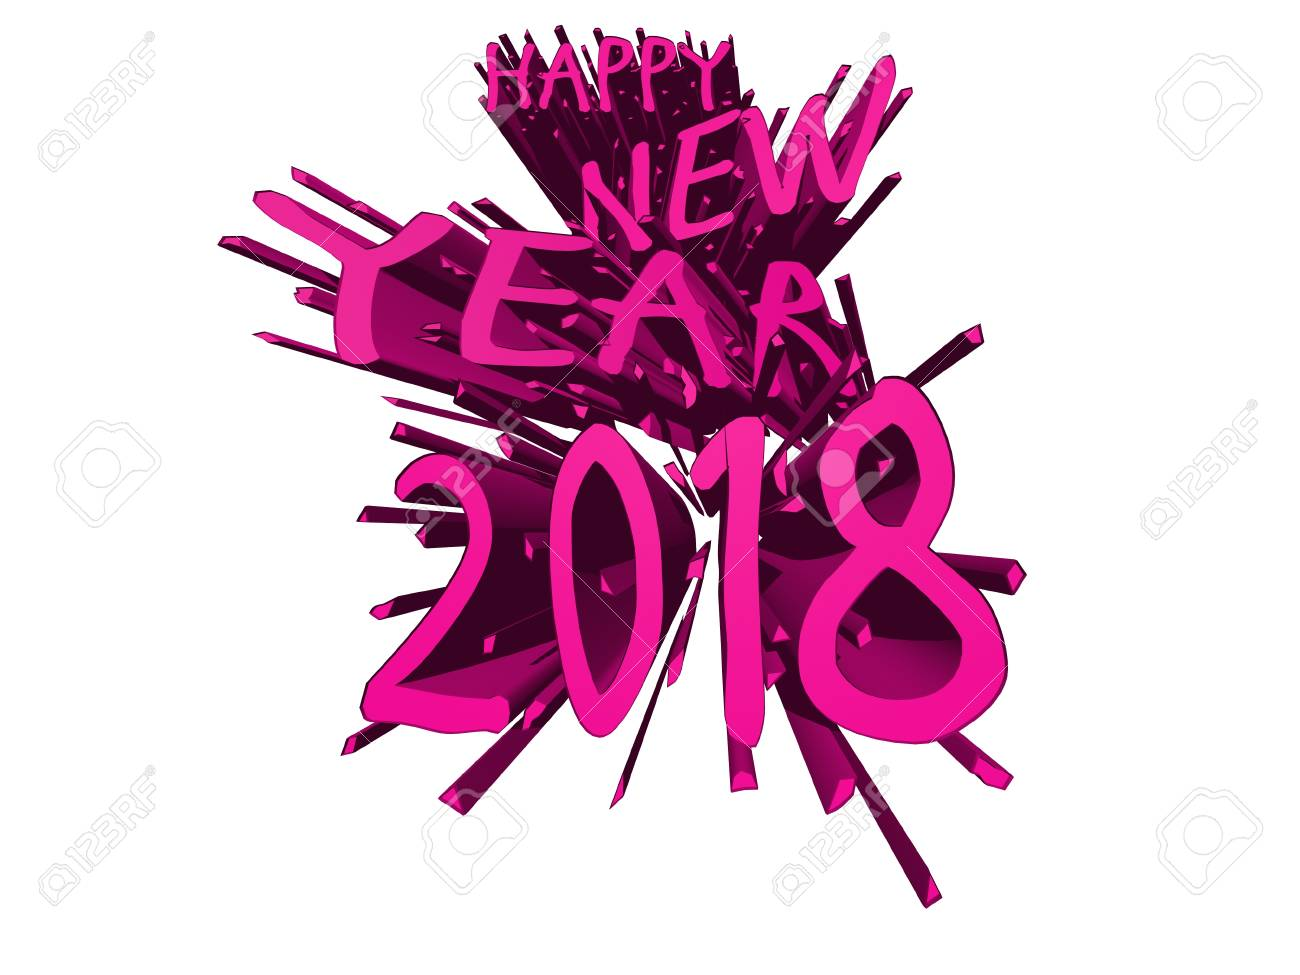 happy new year 2018 pink explosion stock photo 87997166